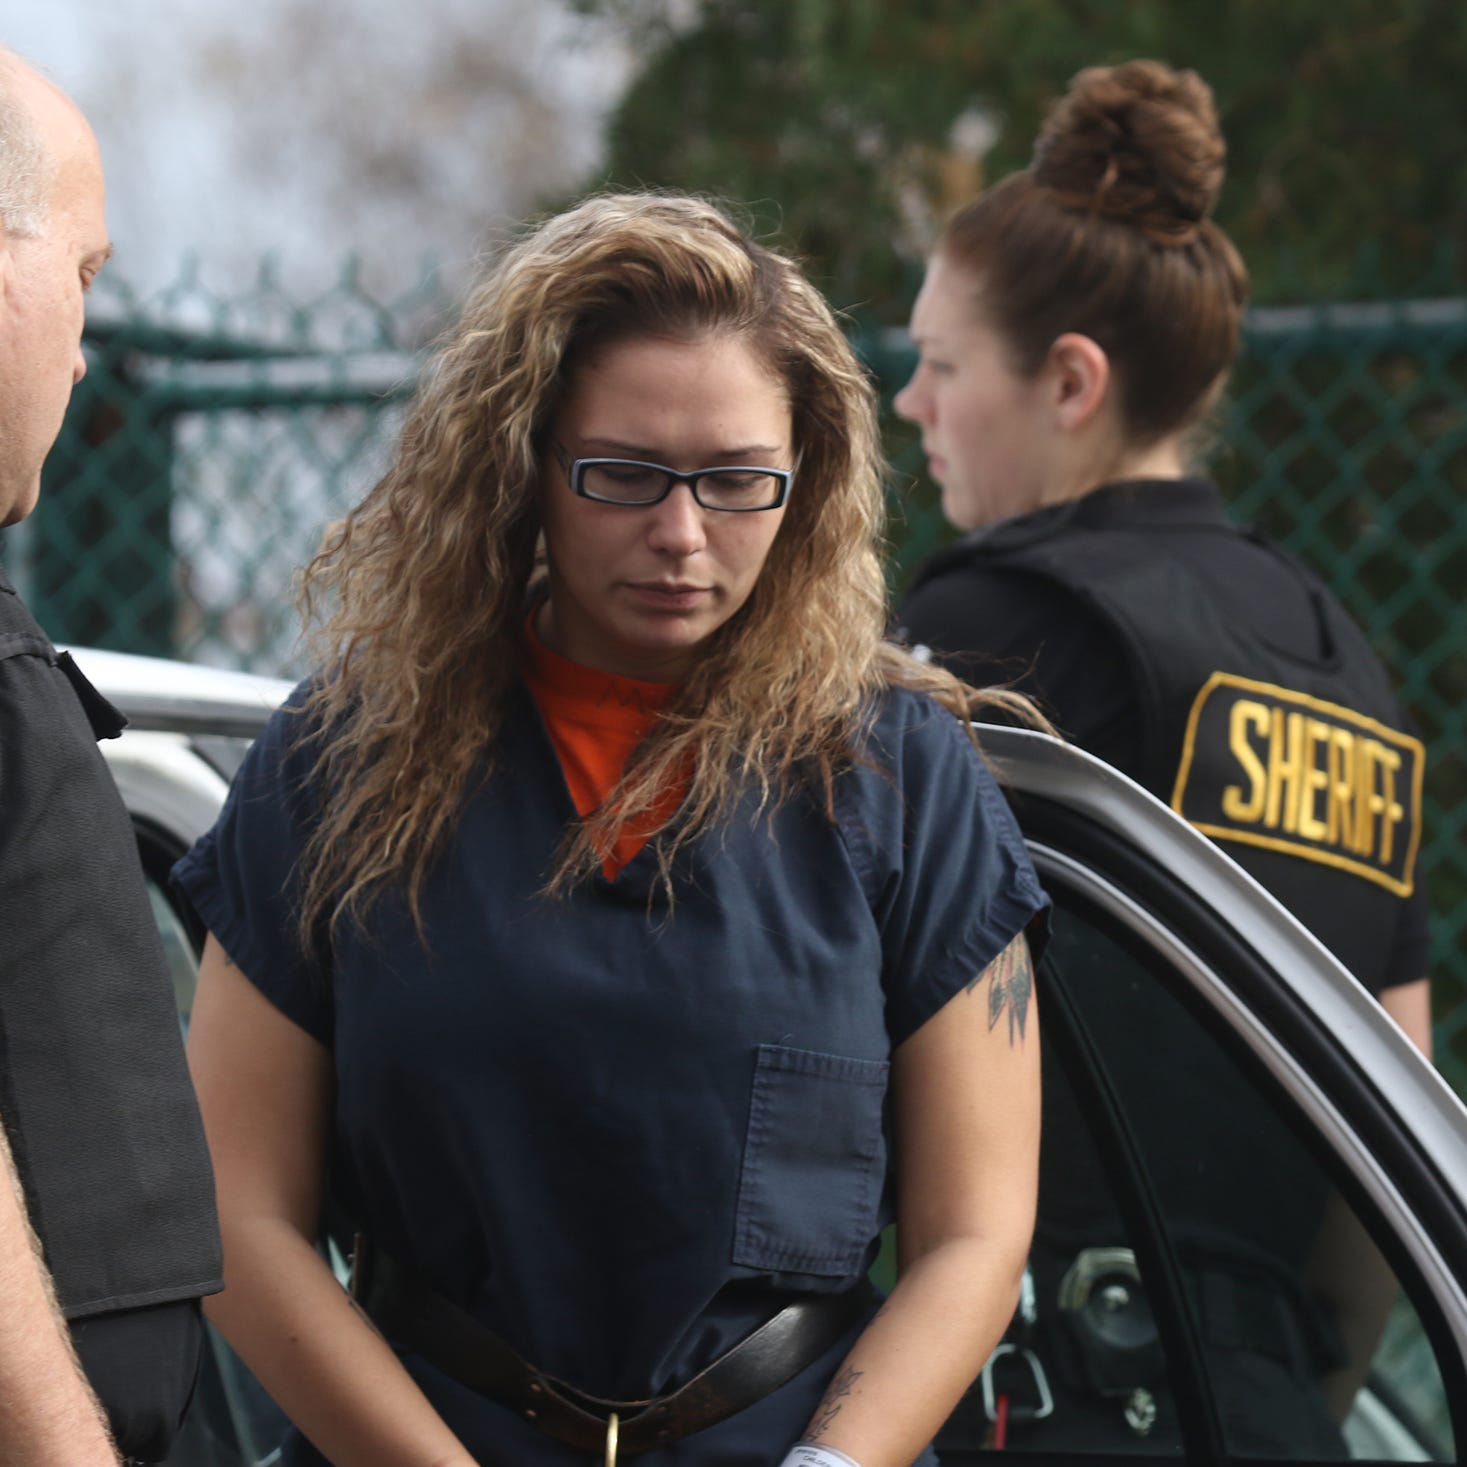 Charlene Childers accepts plea deal, pleads guilty to manslaughter in 2018 Sodus double homicide